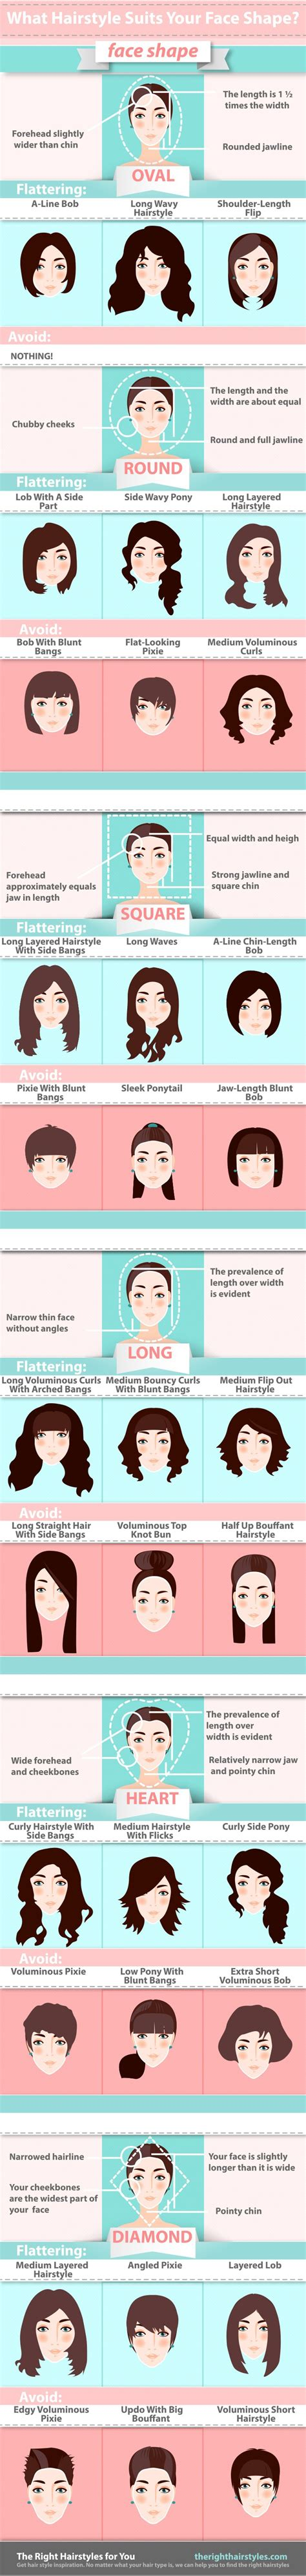 face shapes and hairstyles to match match your hairstyle to the shape of your face